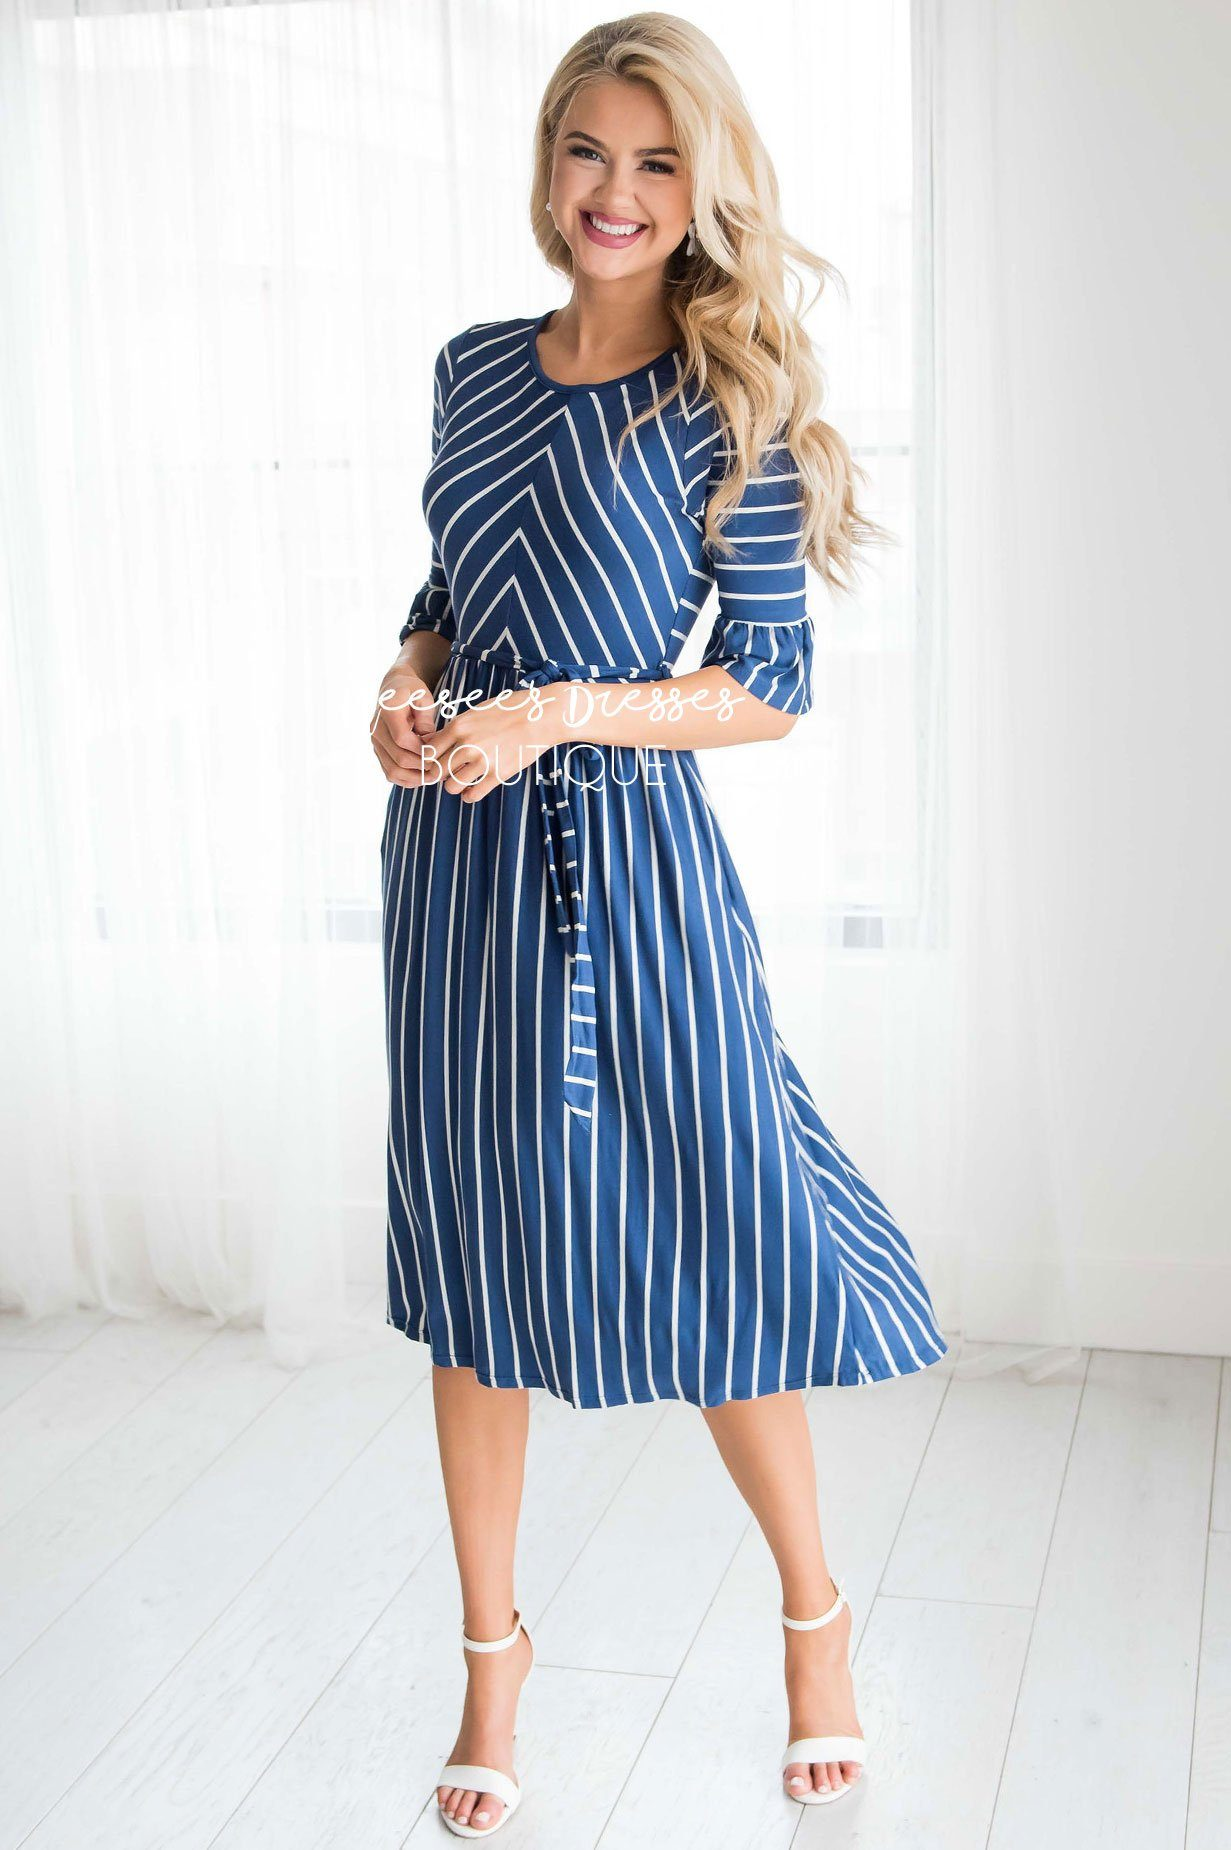 Dark Blue Striped Modest Dress | Best Modest Dresses - NeeSee's ...